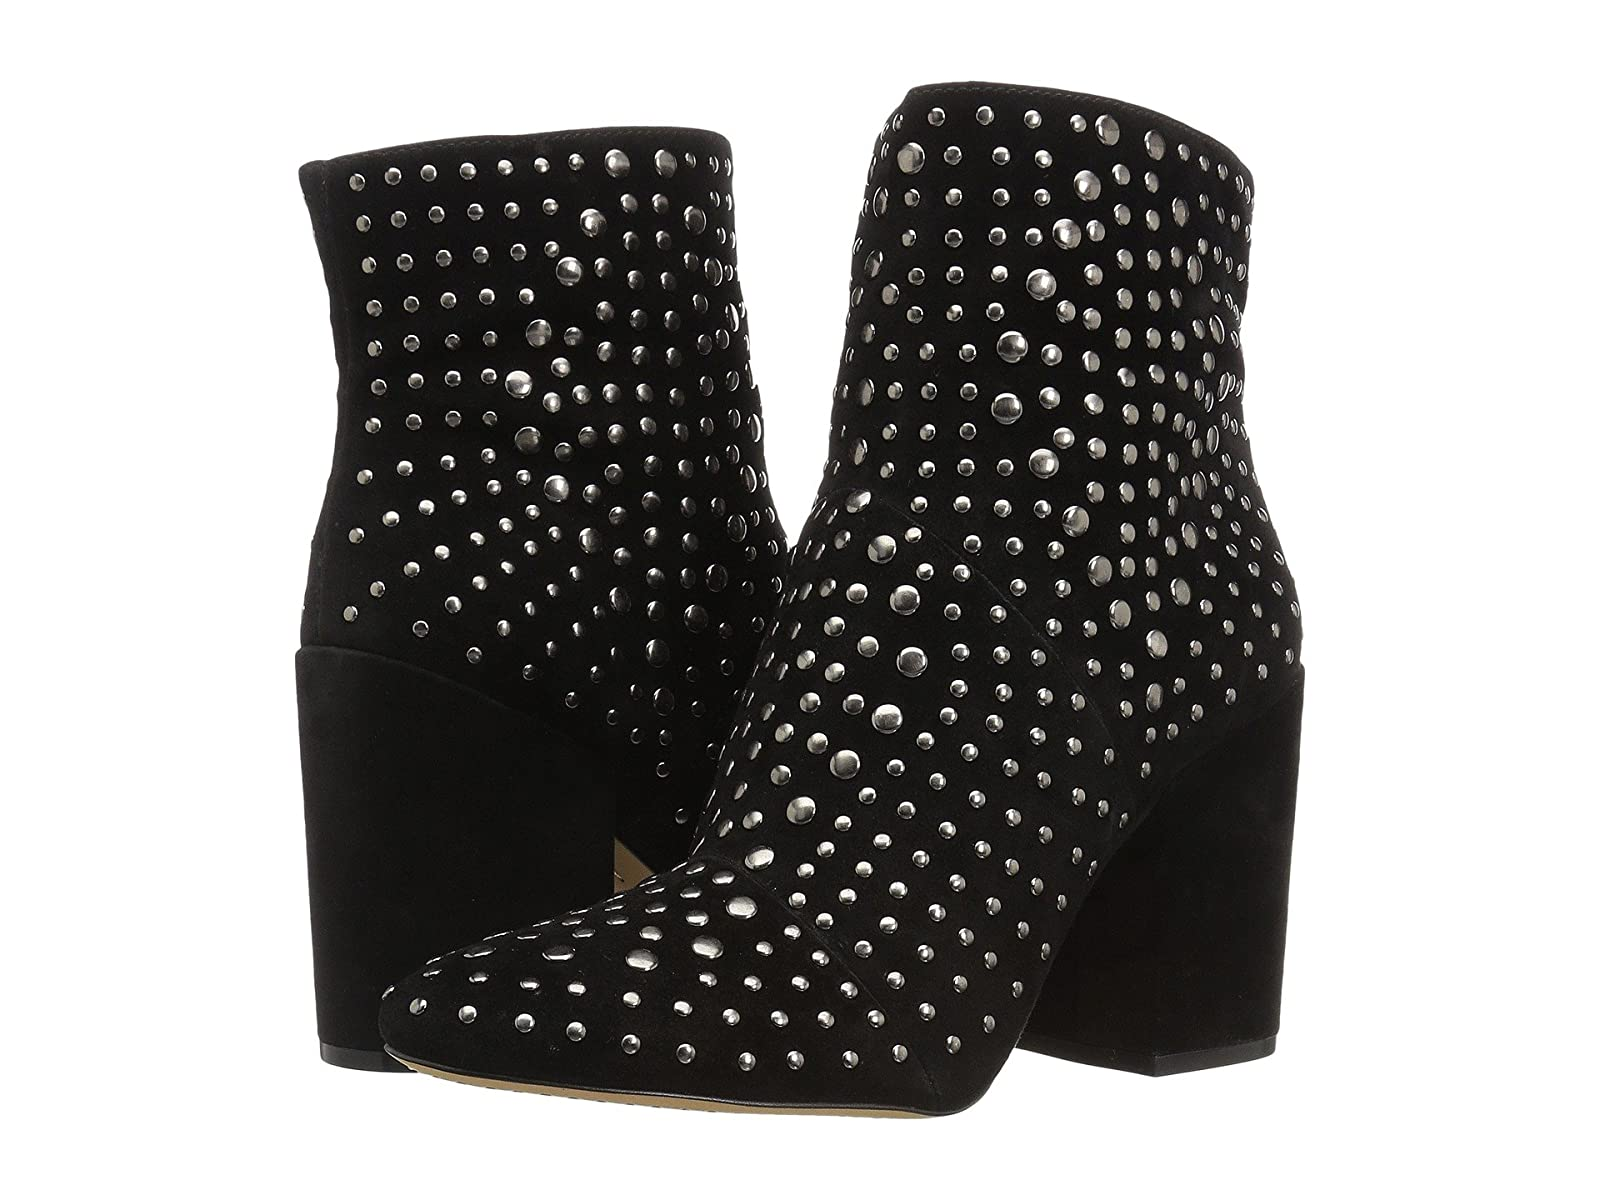 Vince Camuto DristaCheap and distinctive eye-catching shoes